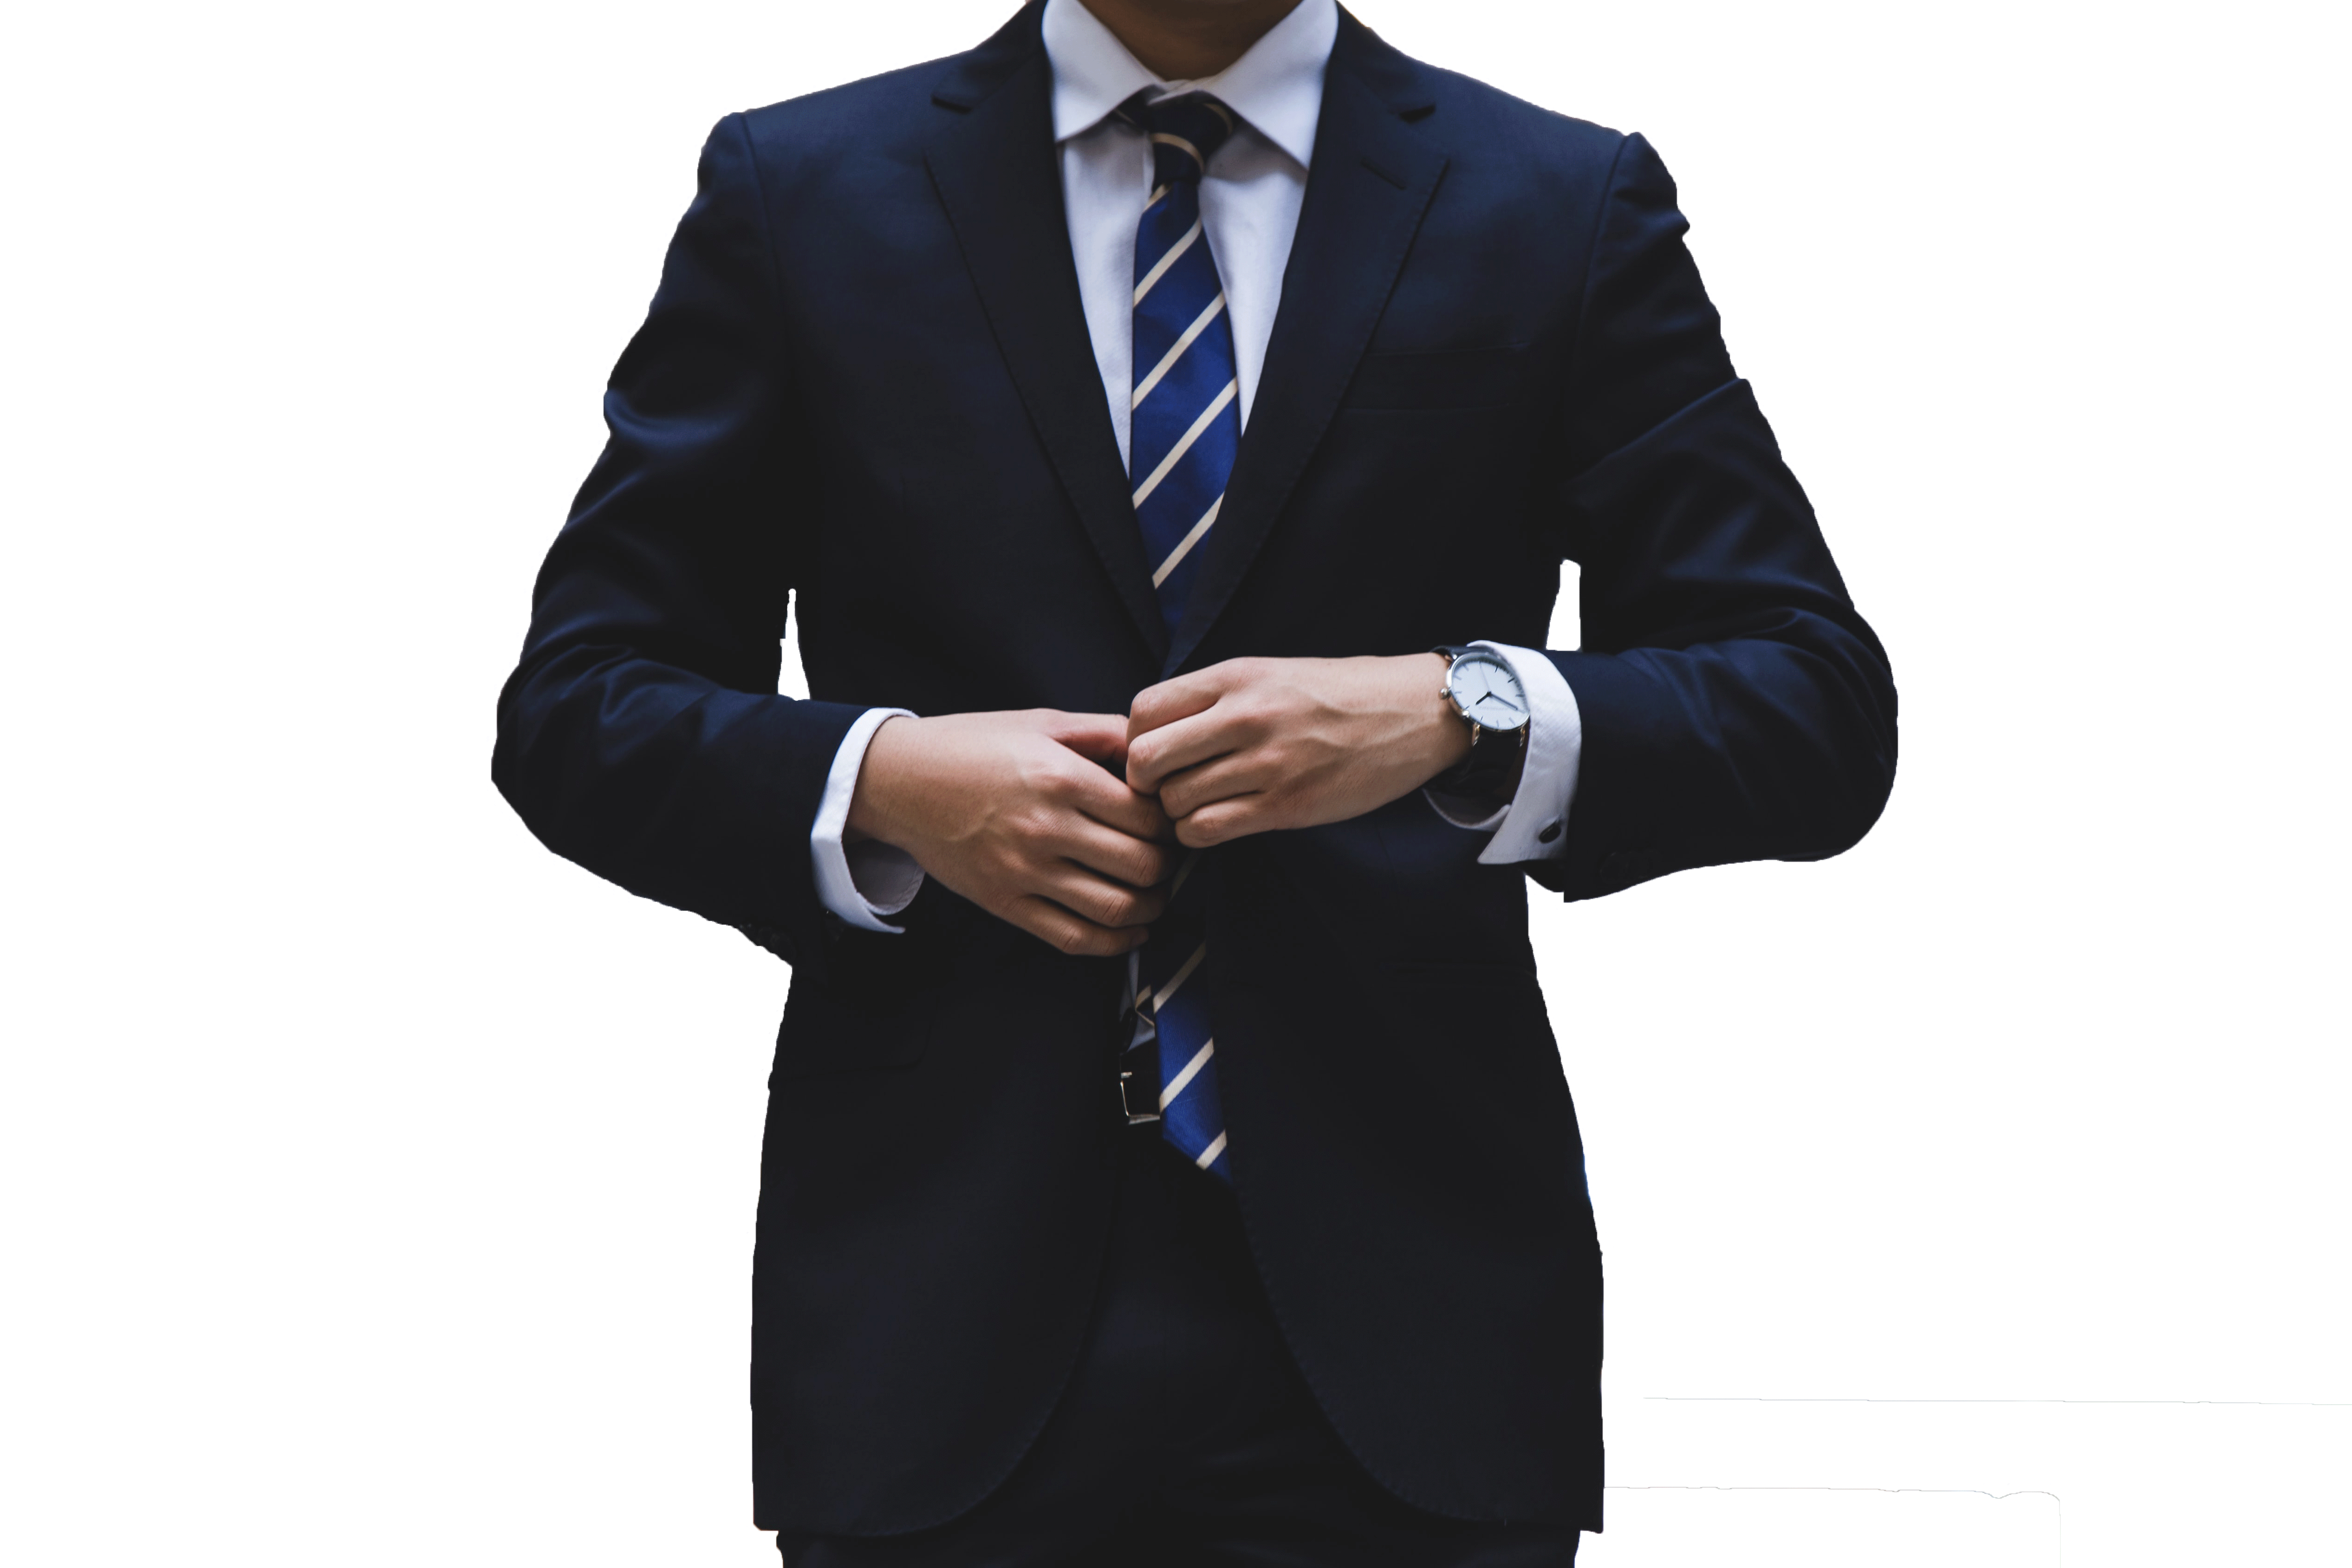 Man dress in dark navy suits and a blue tie